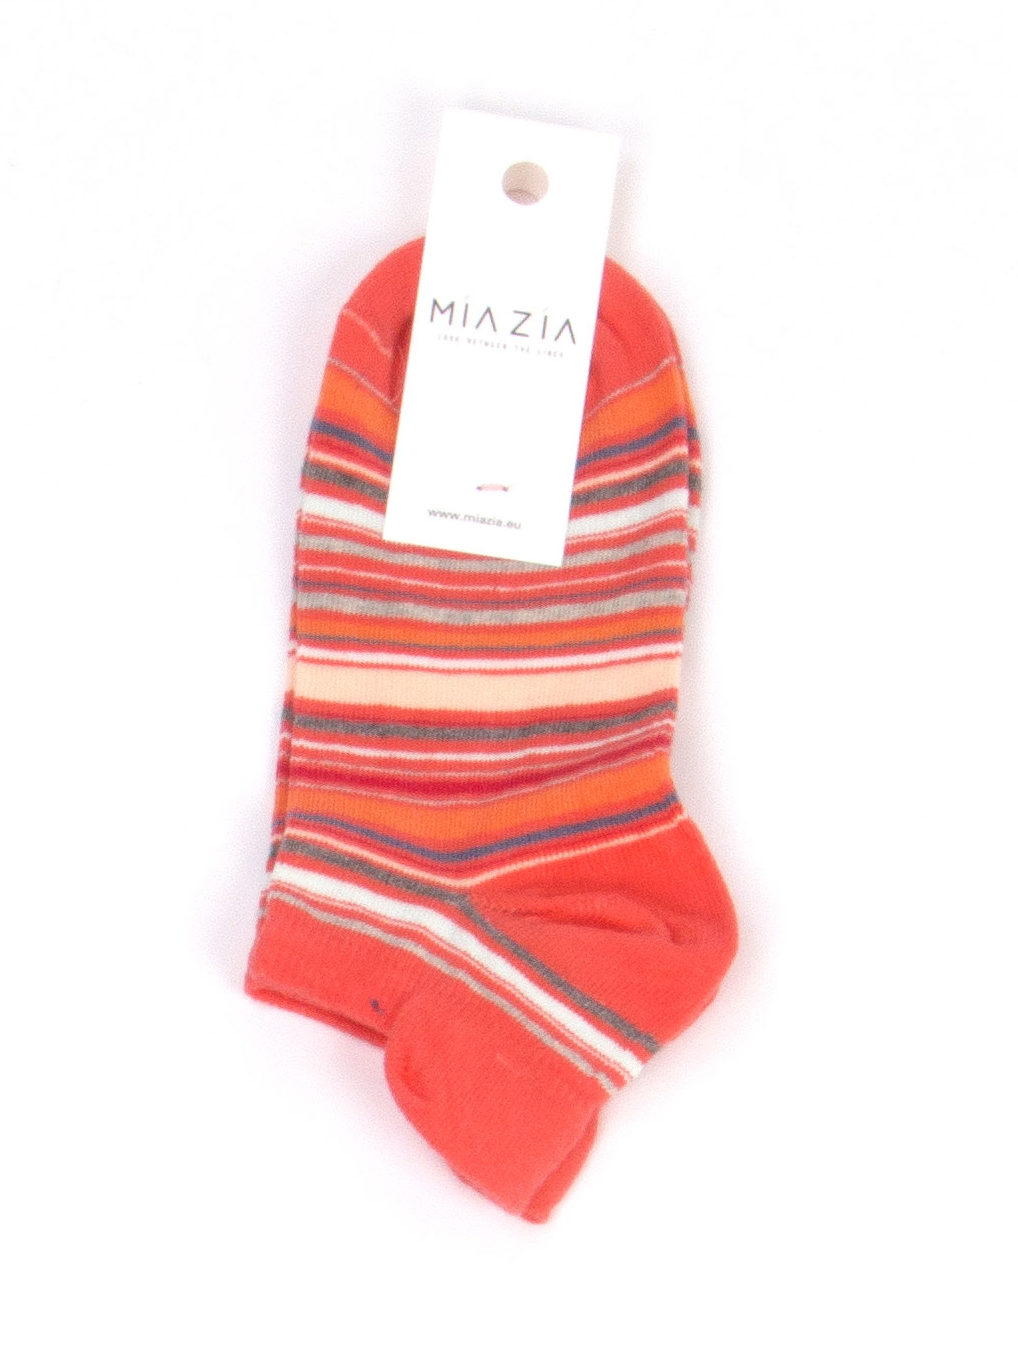 Pair of short coral striped socks